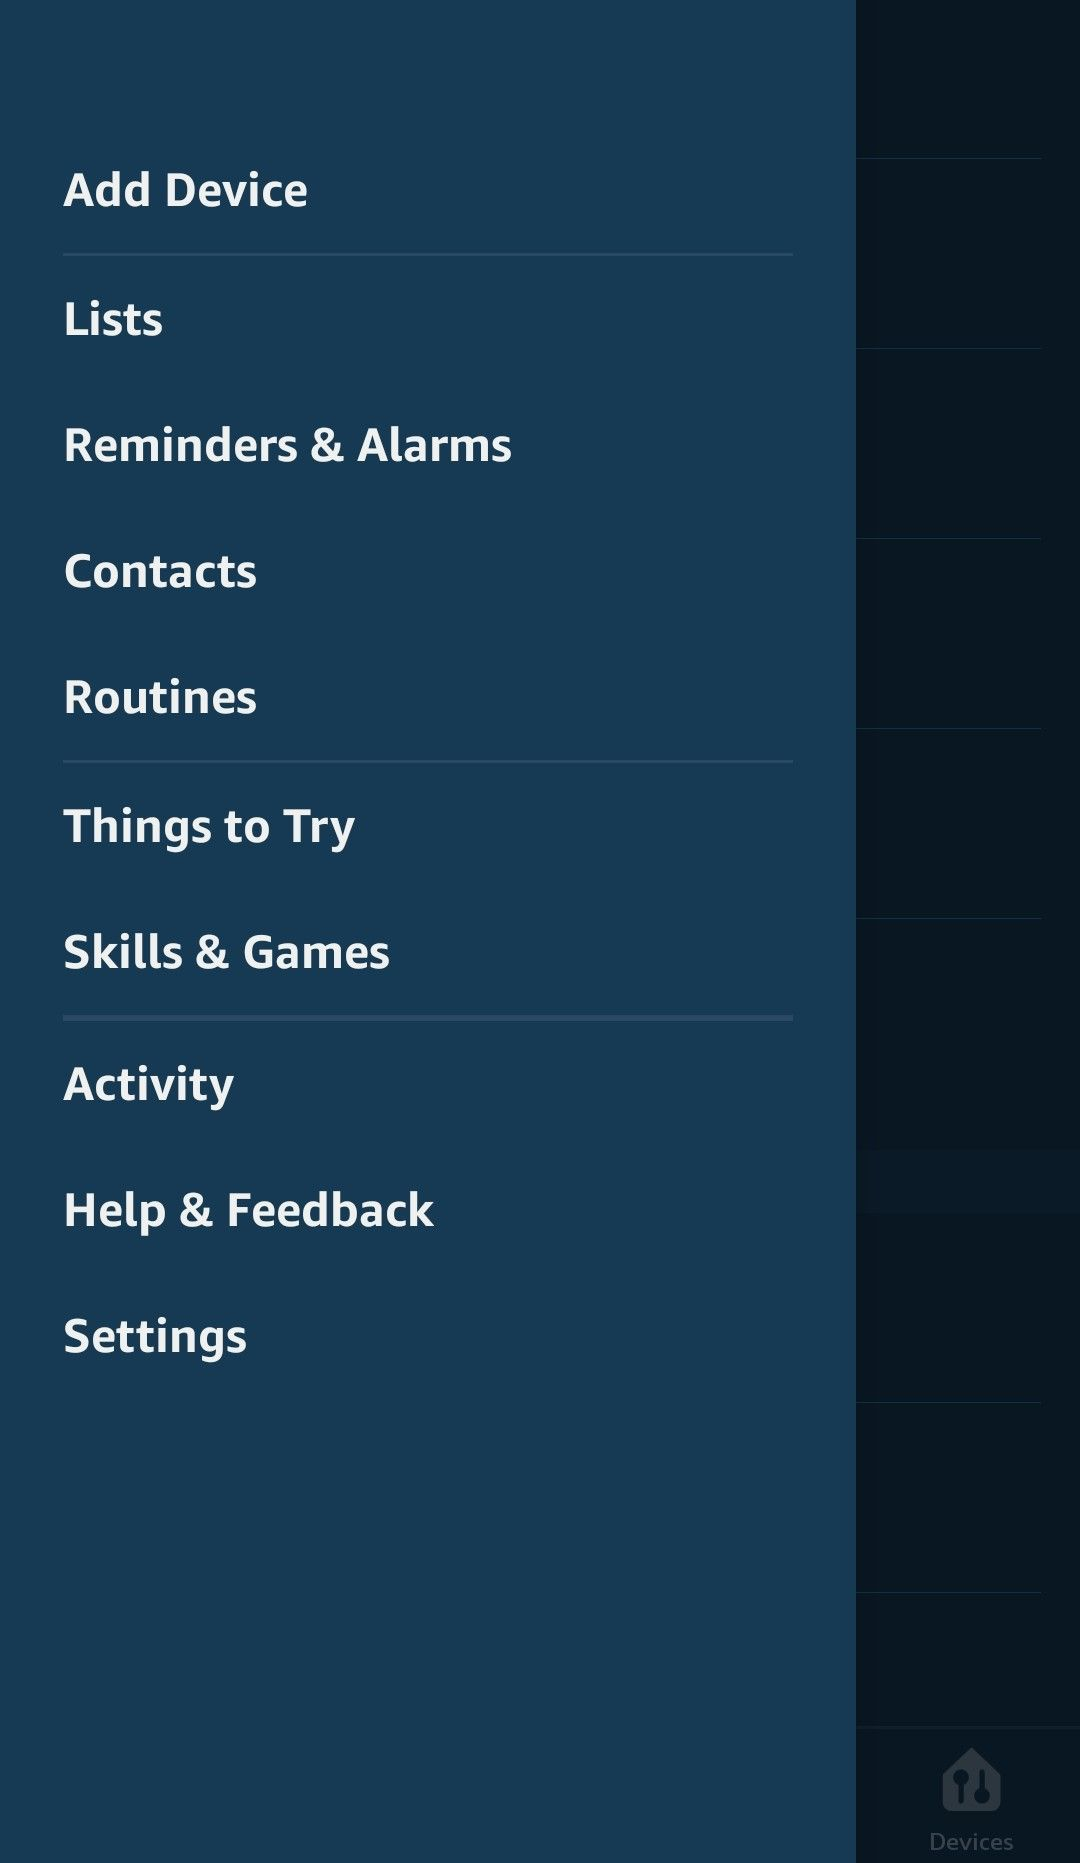 How2foru Easy Answers For You And Me In 2020 Alexa App Echo Devices Skill Games